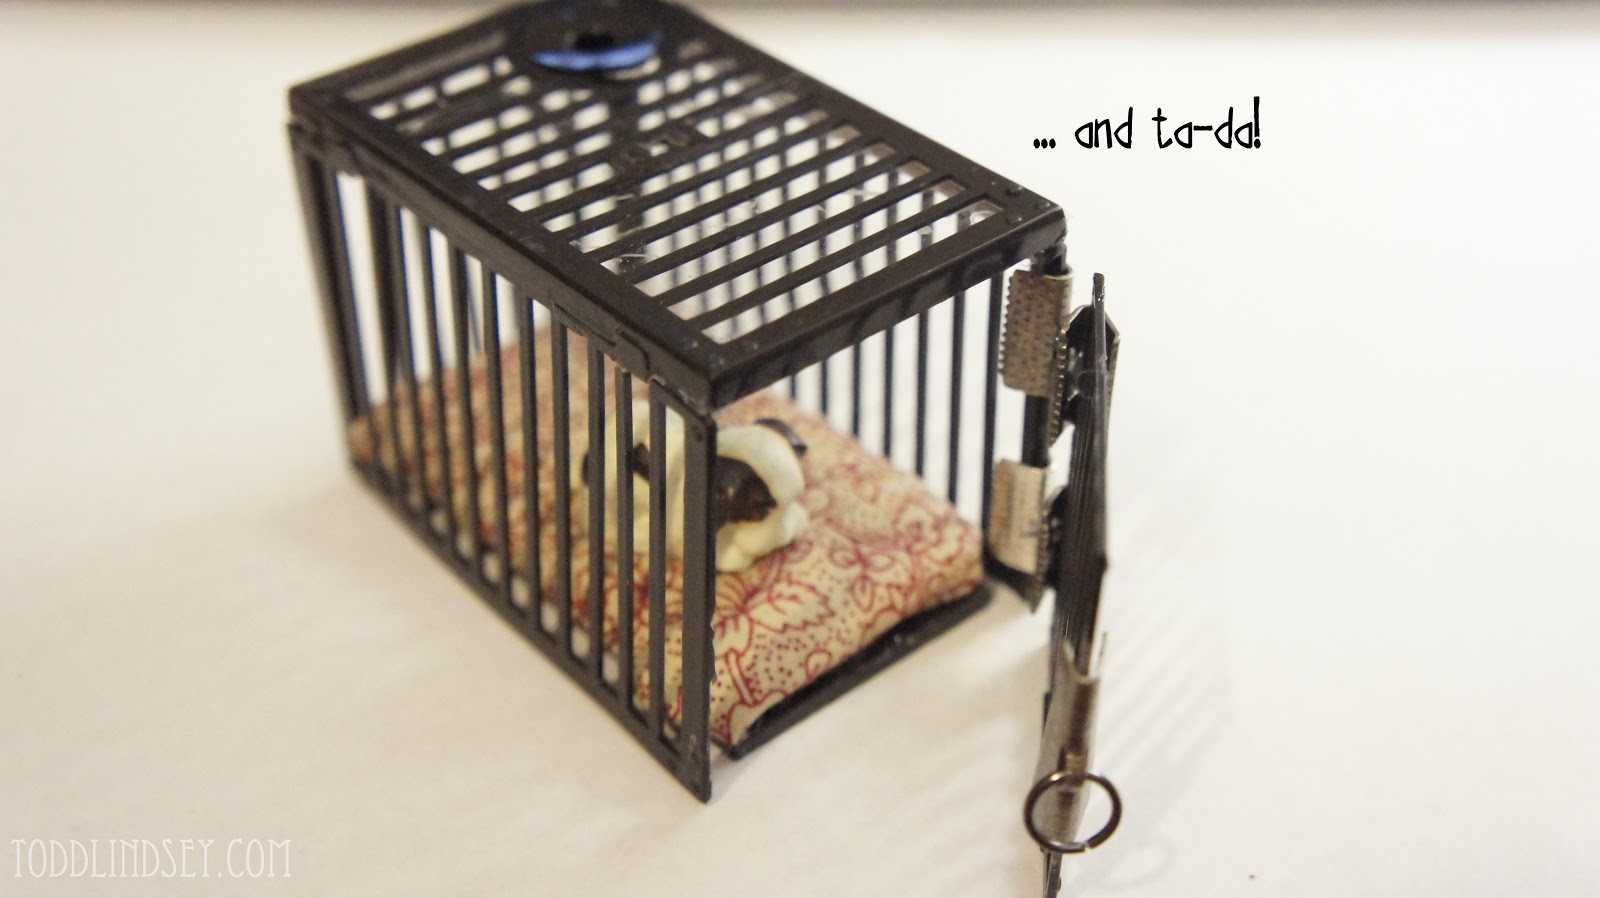 DIY Dog Crate  Domer Home DIY Dollhouse Miniature Dog Crate for $1